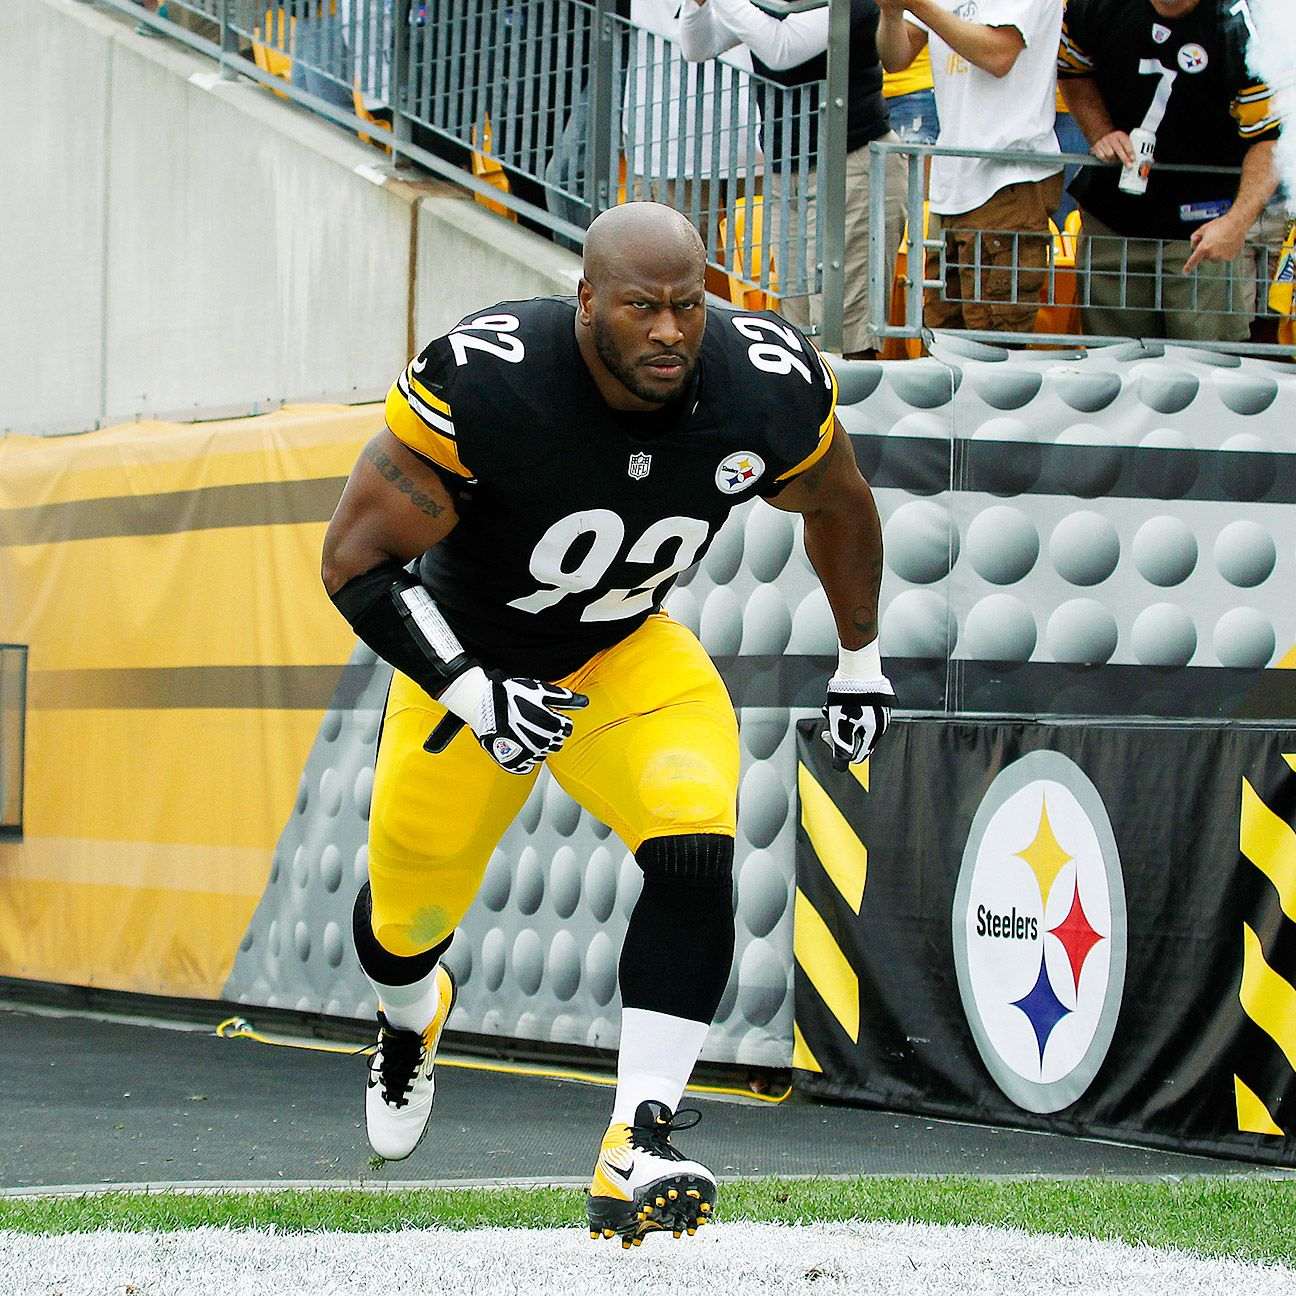 Two Games Two Sacks For Steelers Lb James Harrison In